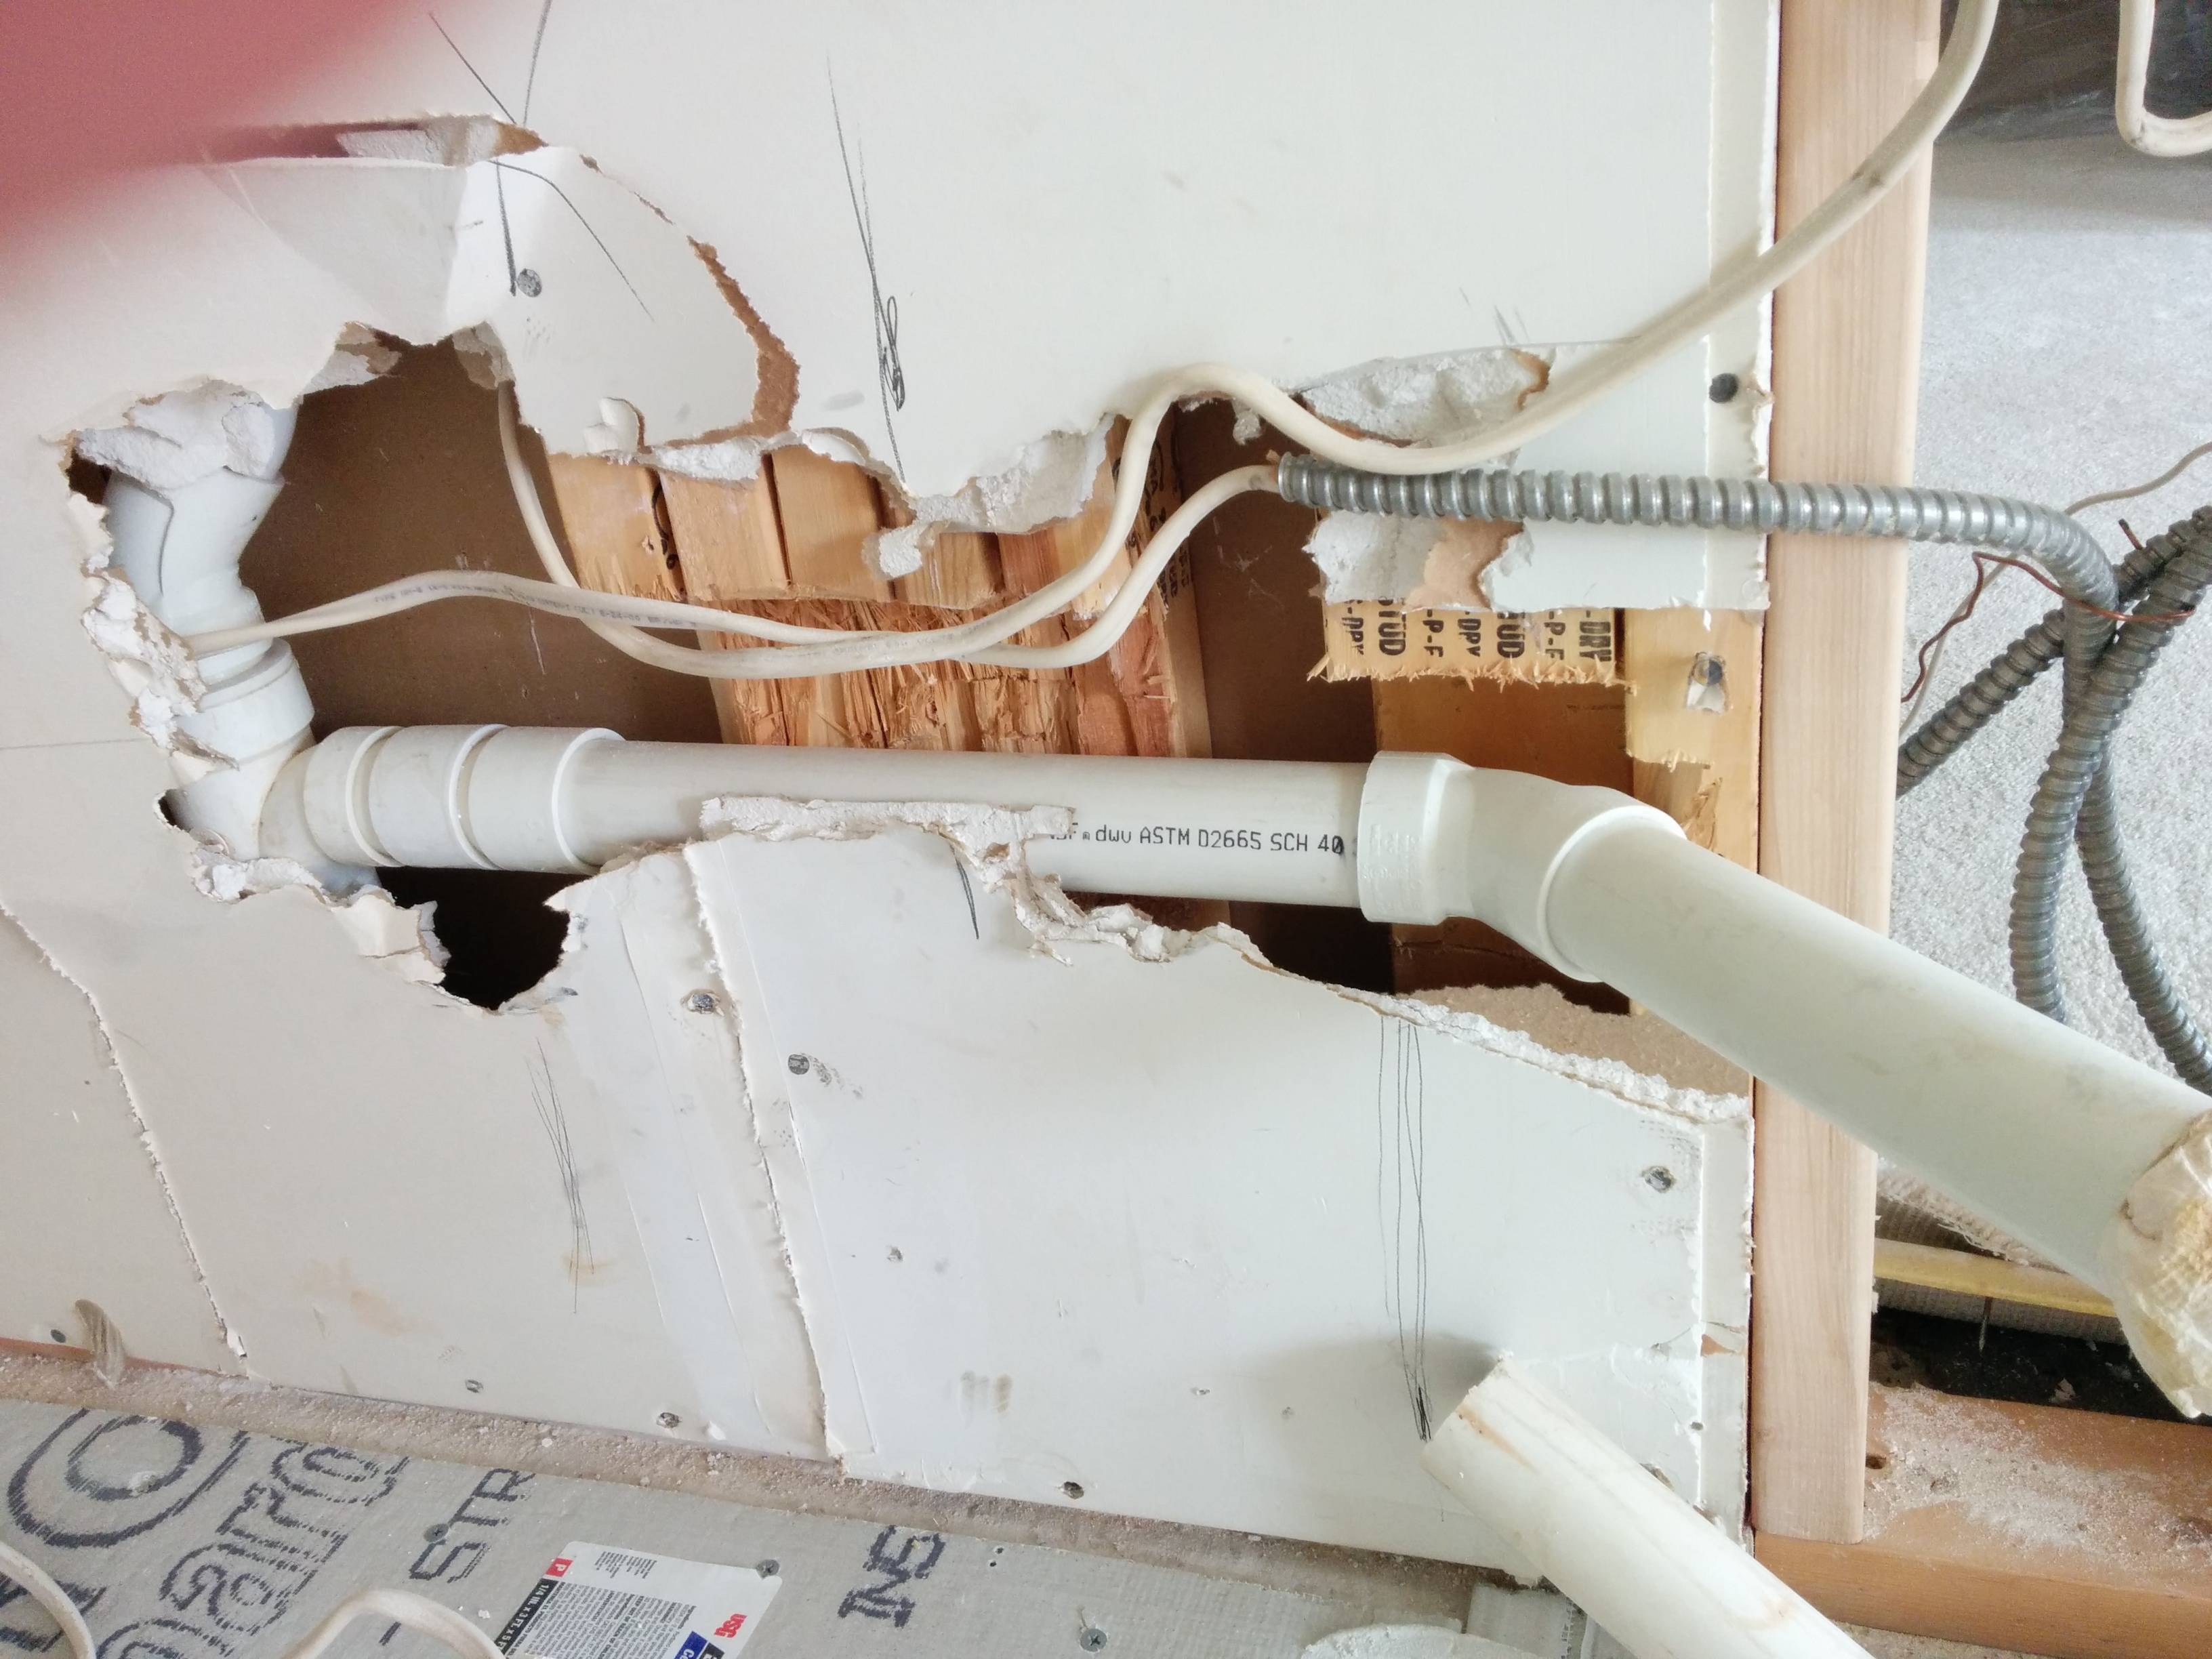 kitchen contractor turquoise chairs walls - plumbing cuts through five studs. is ok? home ...